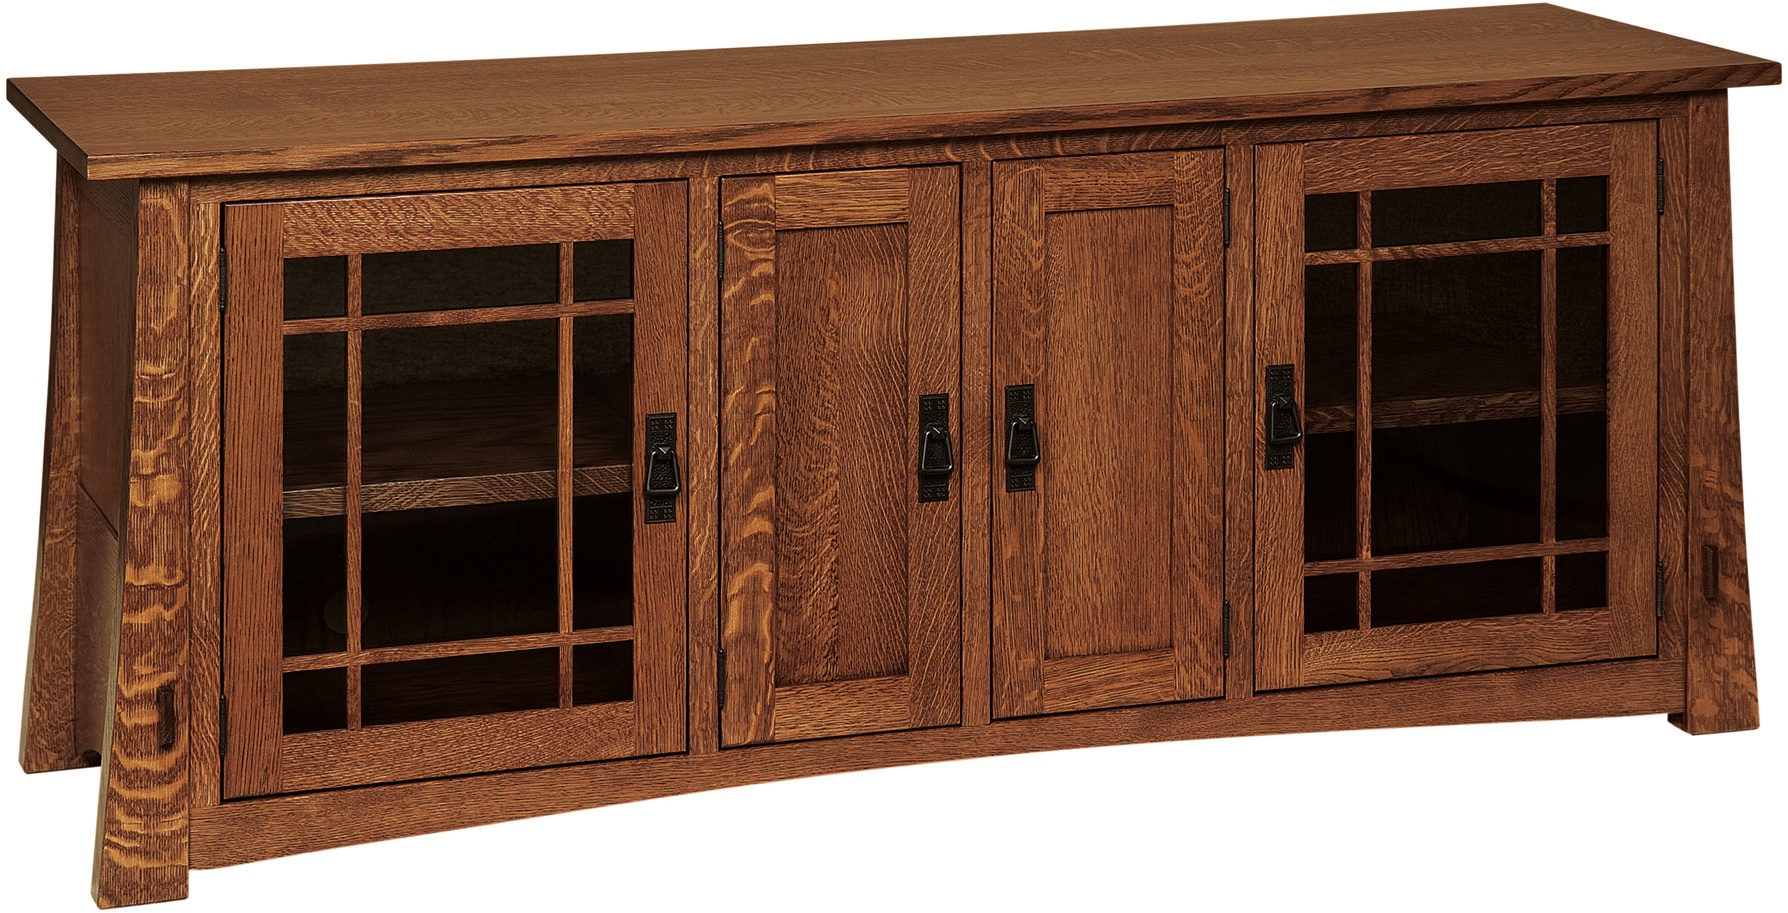 Modesto TV Cabinet Collection